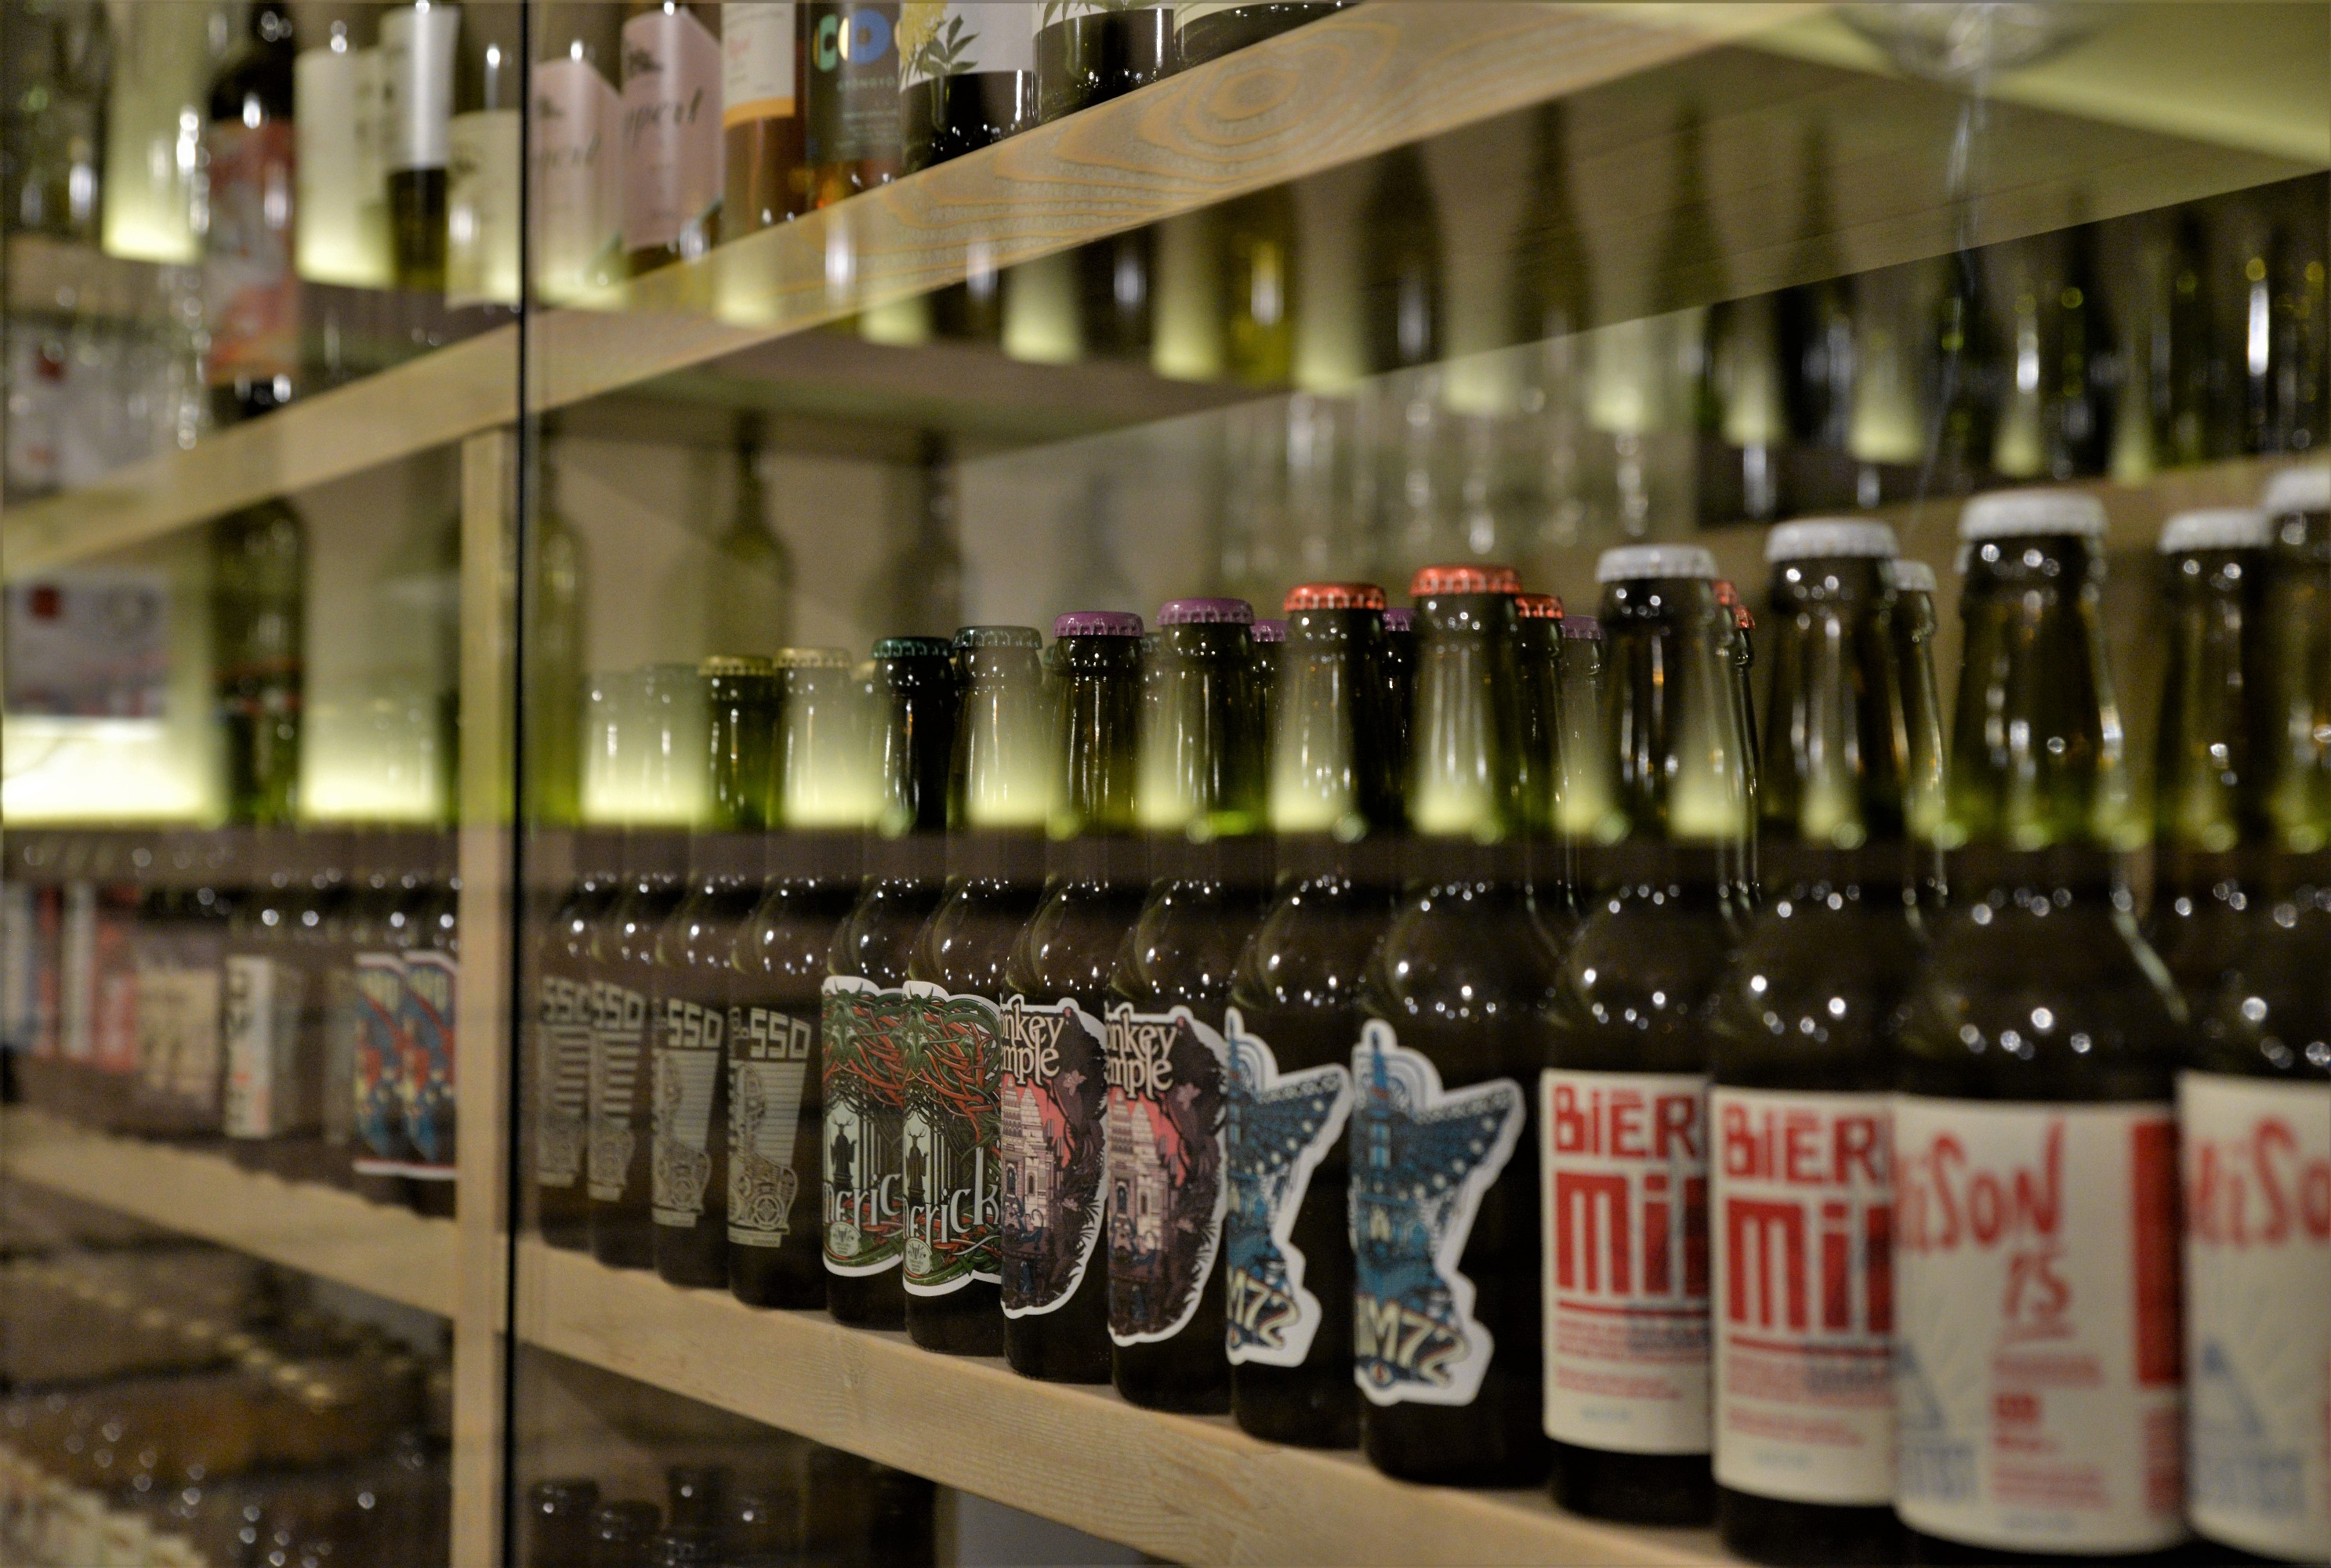 The beer selection of Hunyadi Gasztroműhely and BBQ - Pubtourist